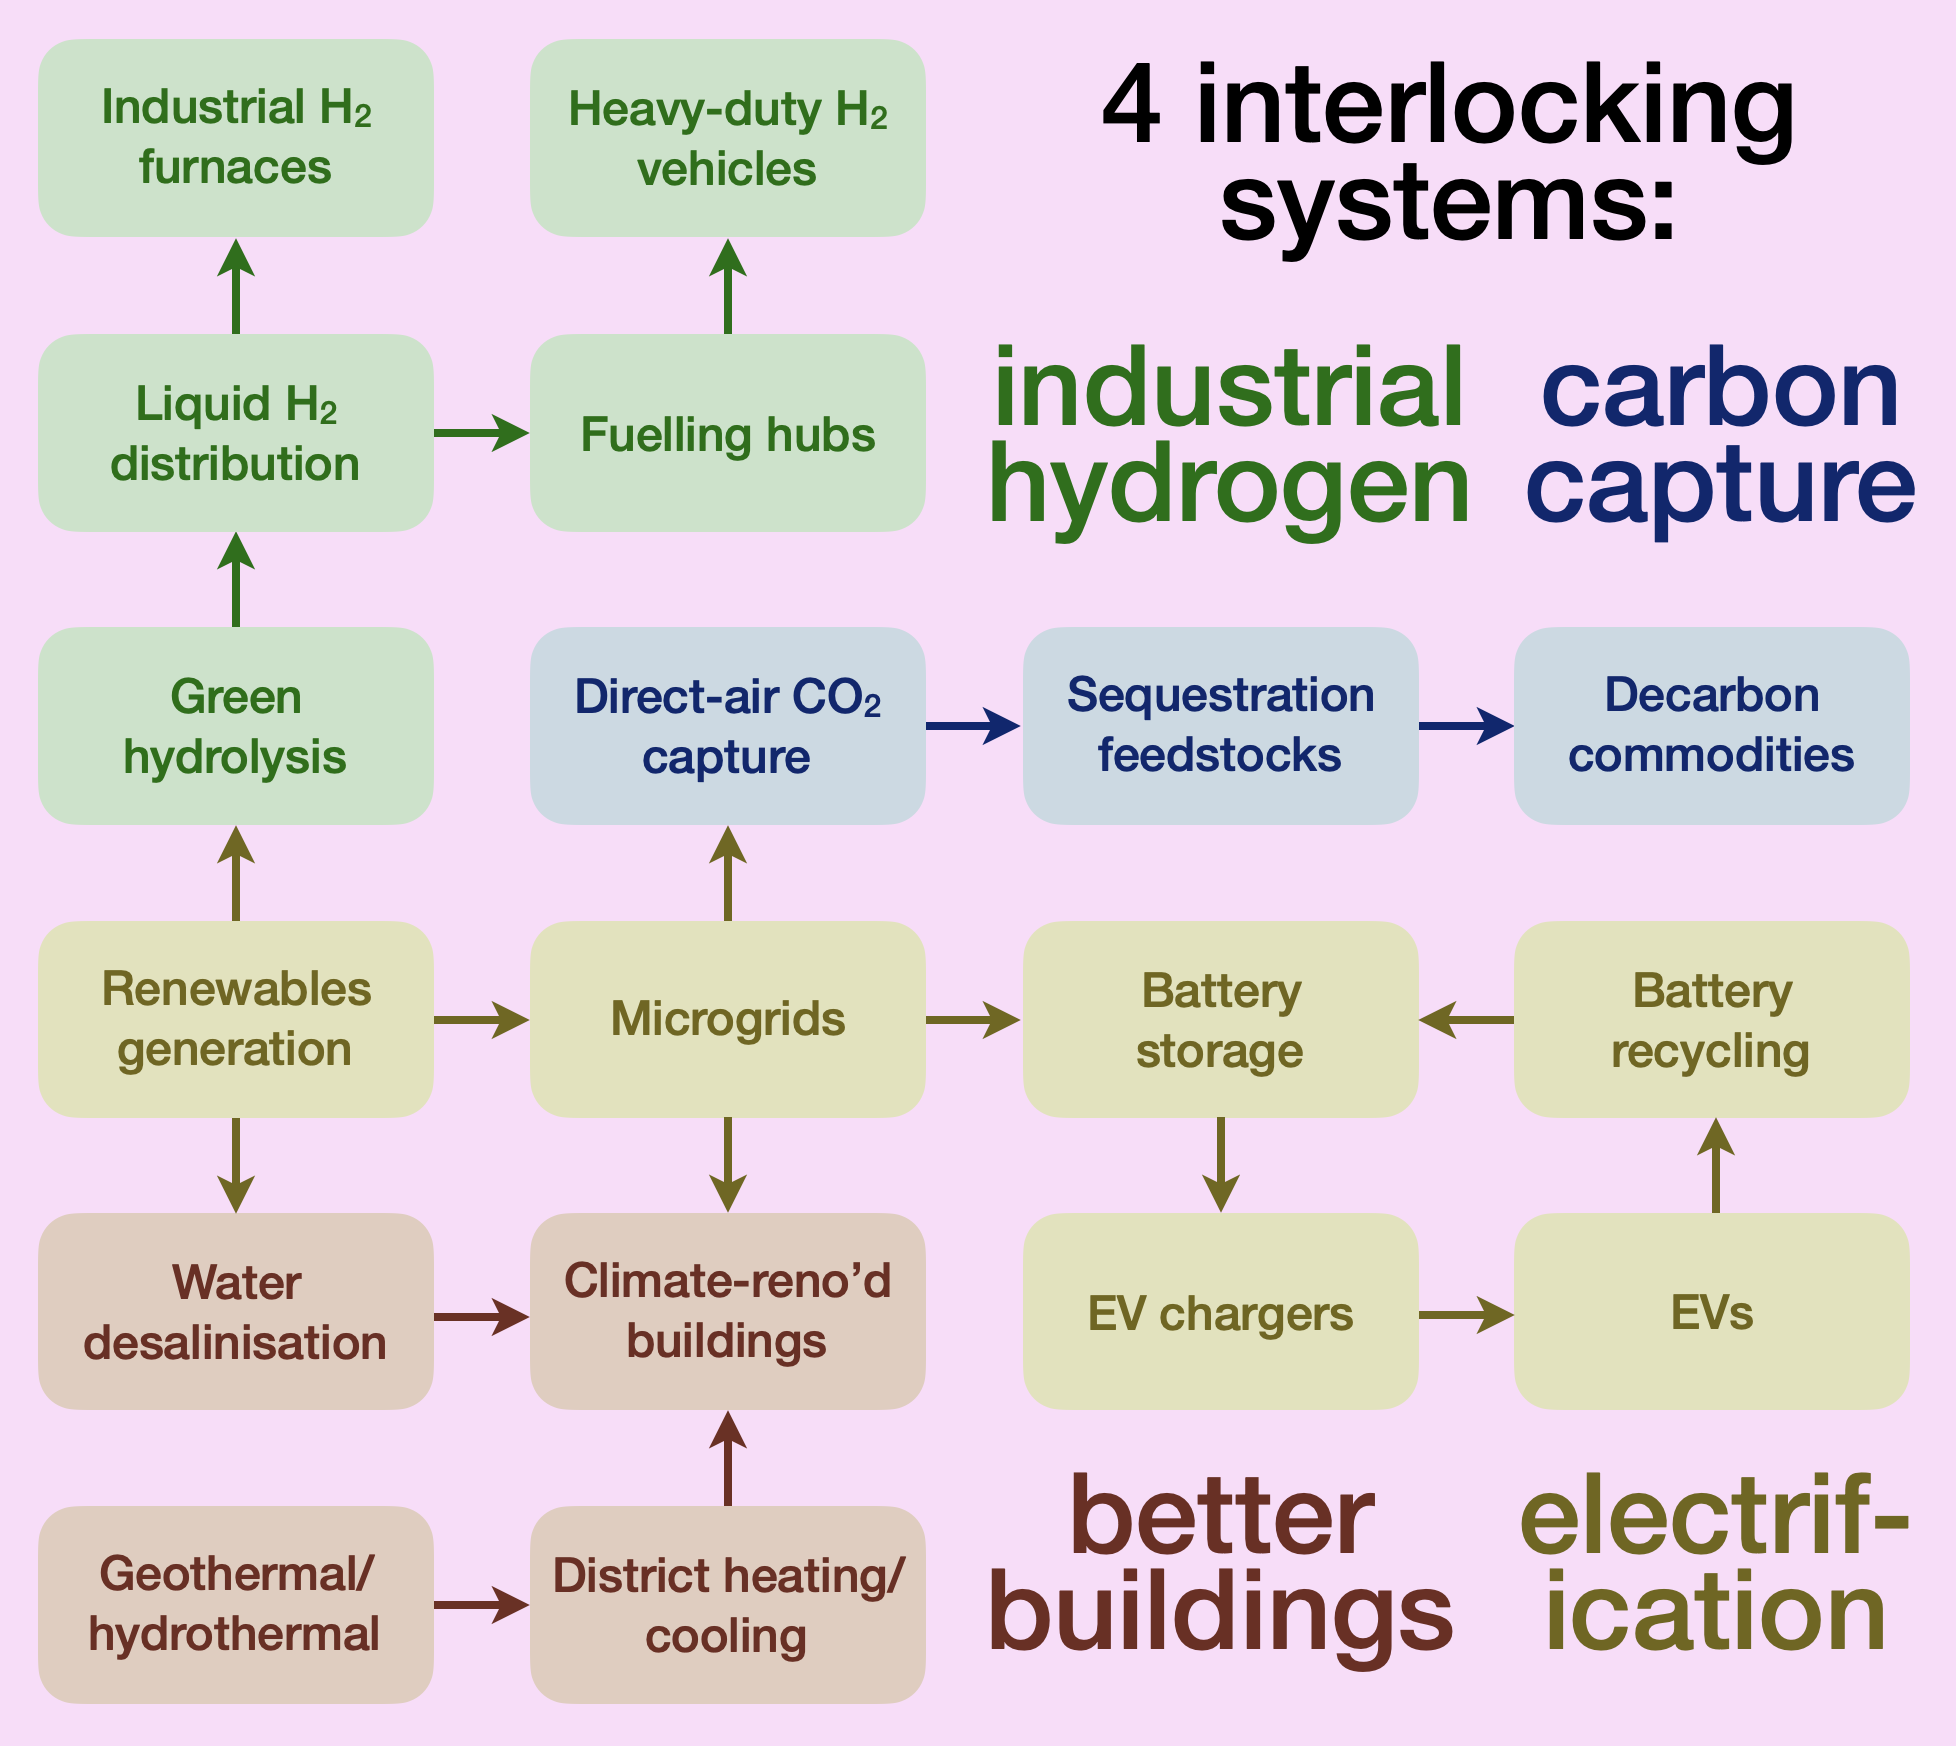 Systems map showing how interconnected industrial hydrogen, carbon capture, better buildings, and electrification systems can become an integrated decarbonisation system.